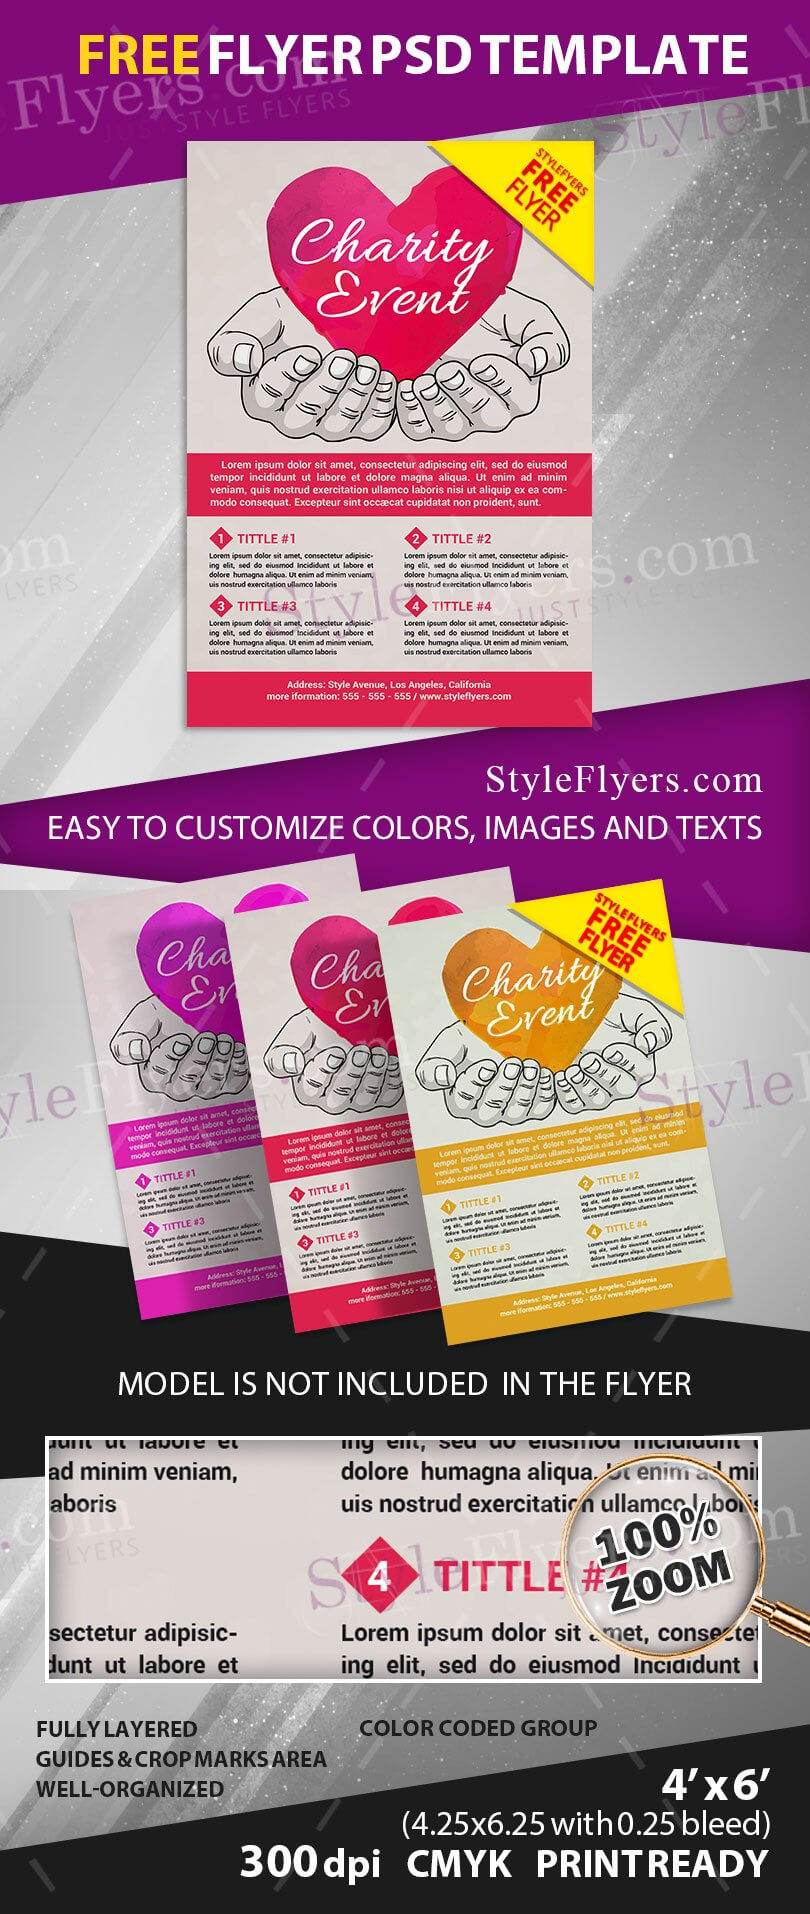 Charity Event Free Psd Flyer Template Free Download #11807 - Styleflyers With Regard To Charity Event Flyer Template